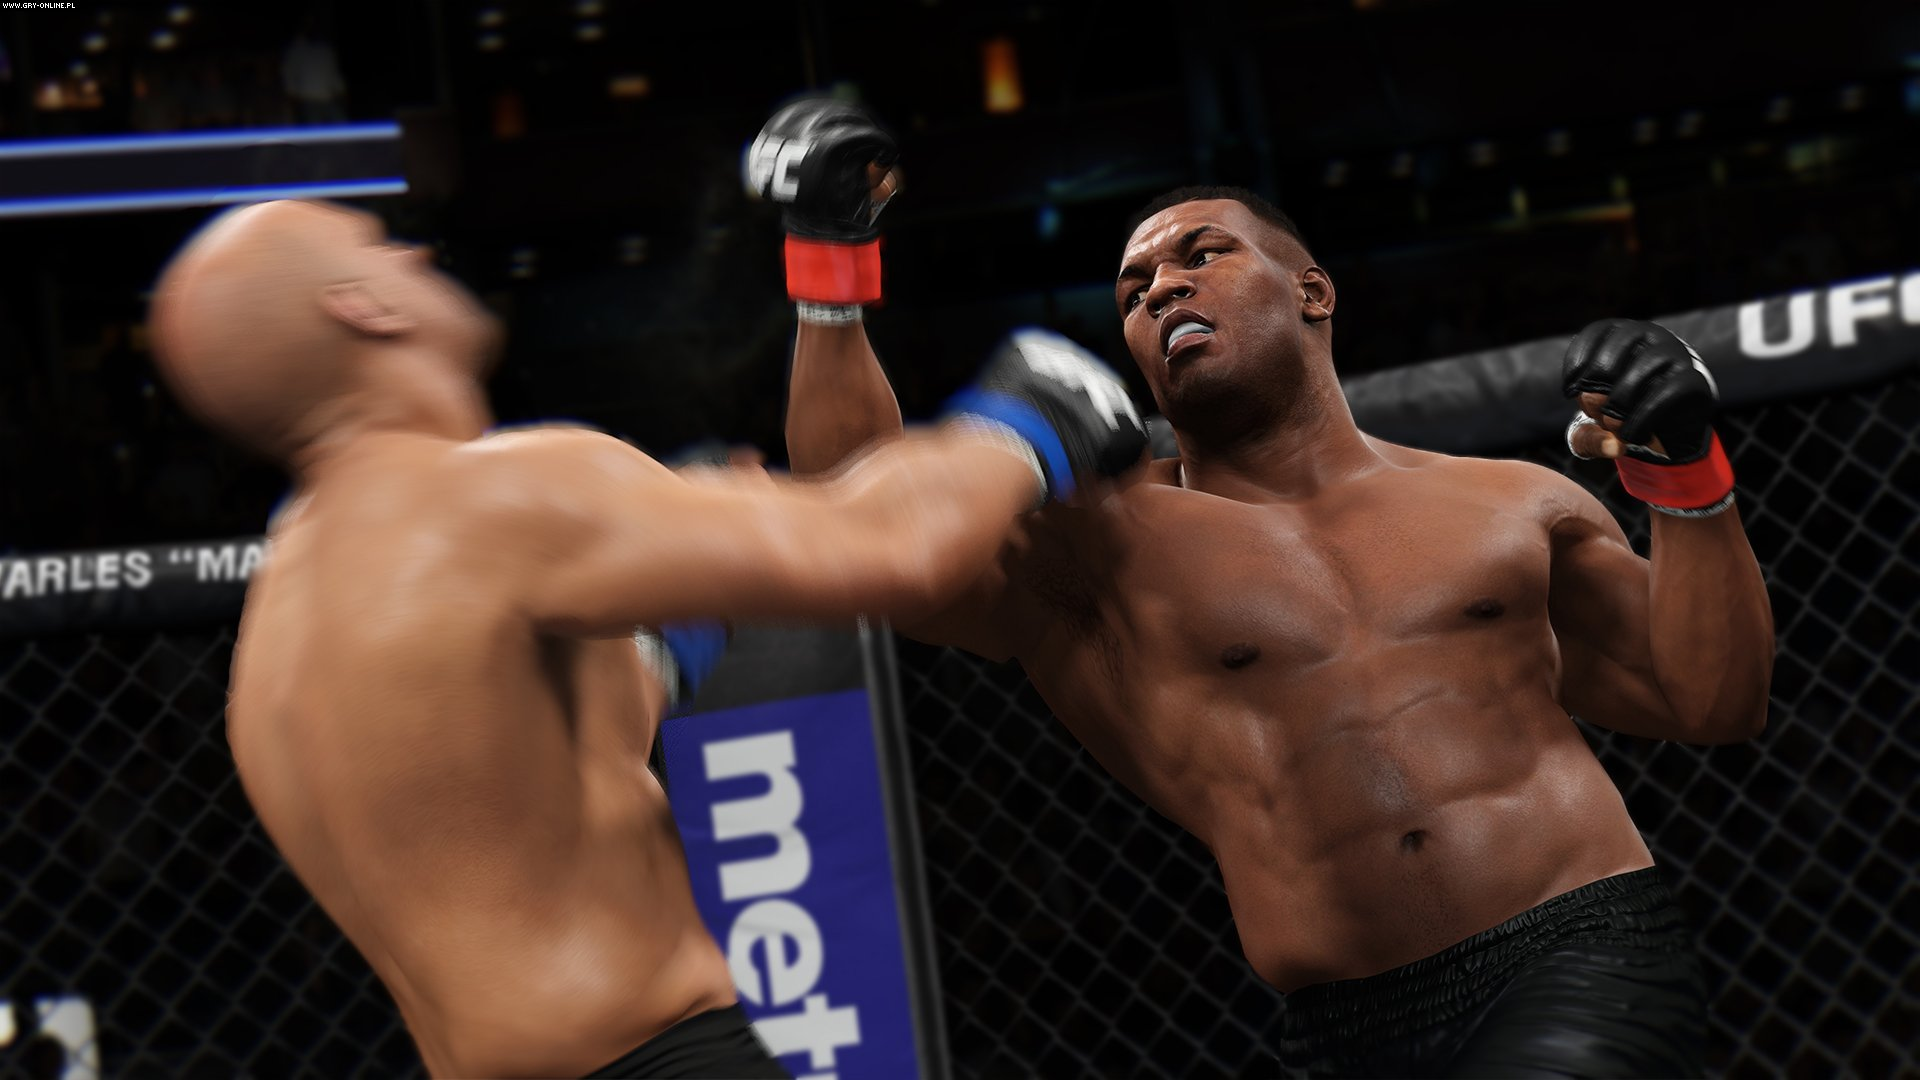 EA Sports UFC 2 PS4, XONE Games Image 2/3, EA Sports, Electronic Arts Inc.